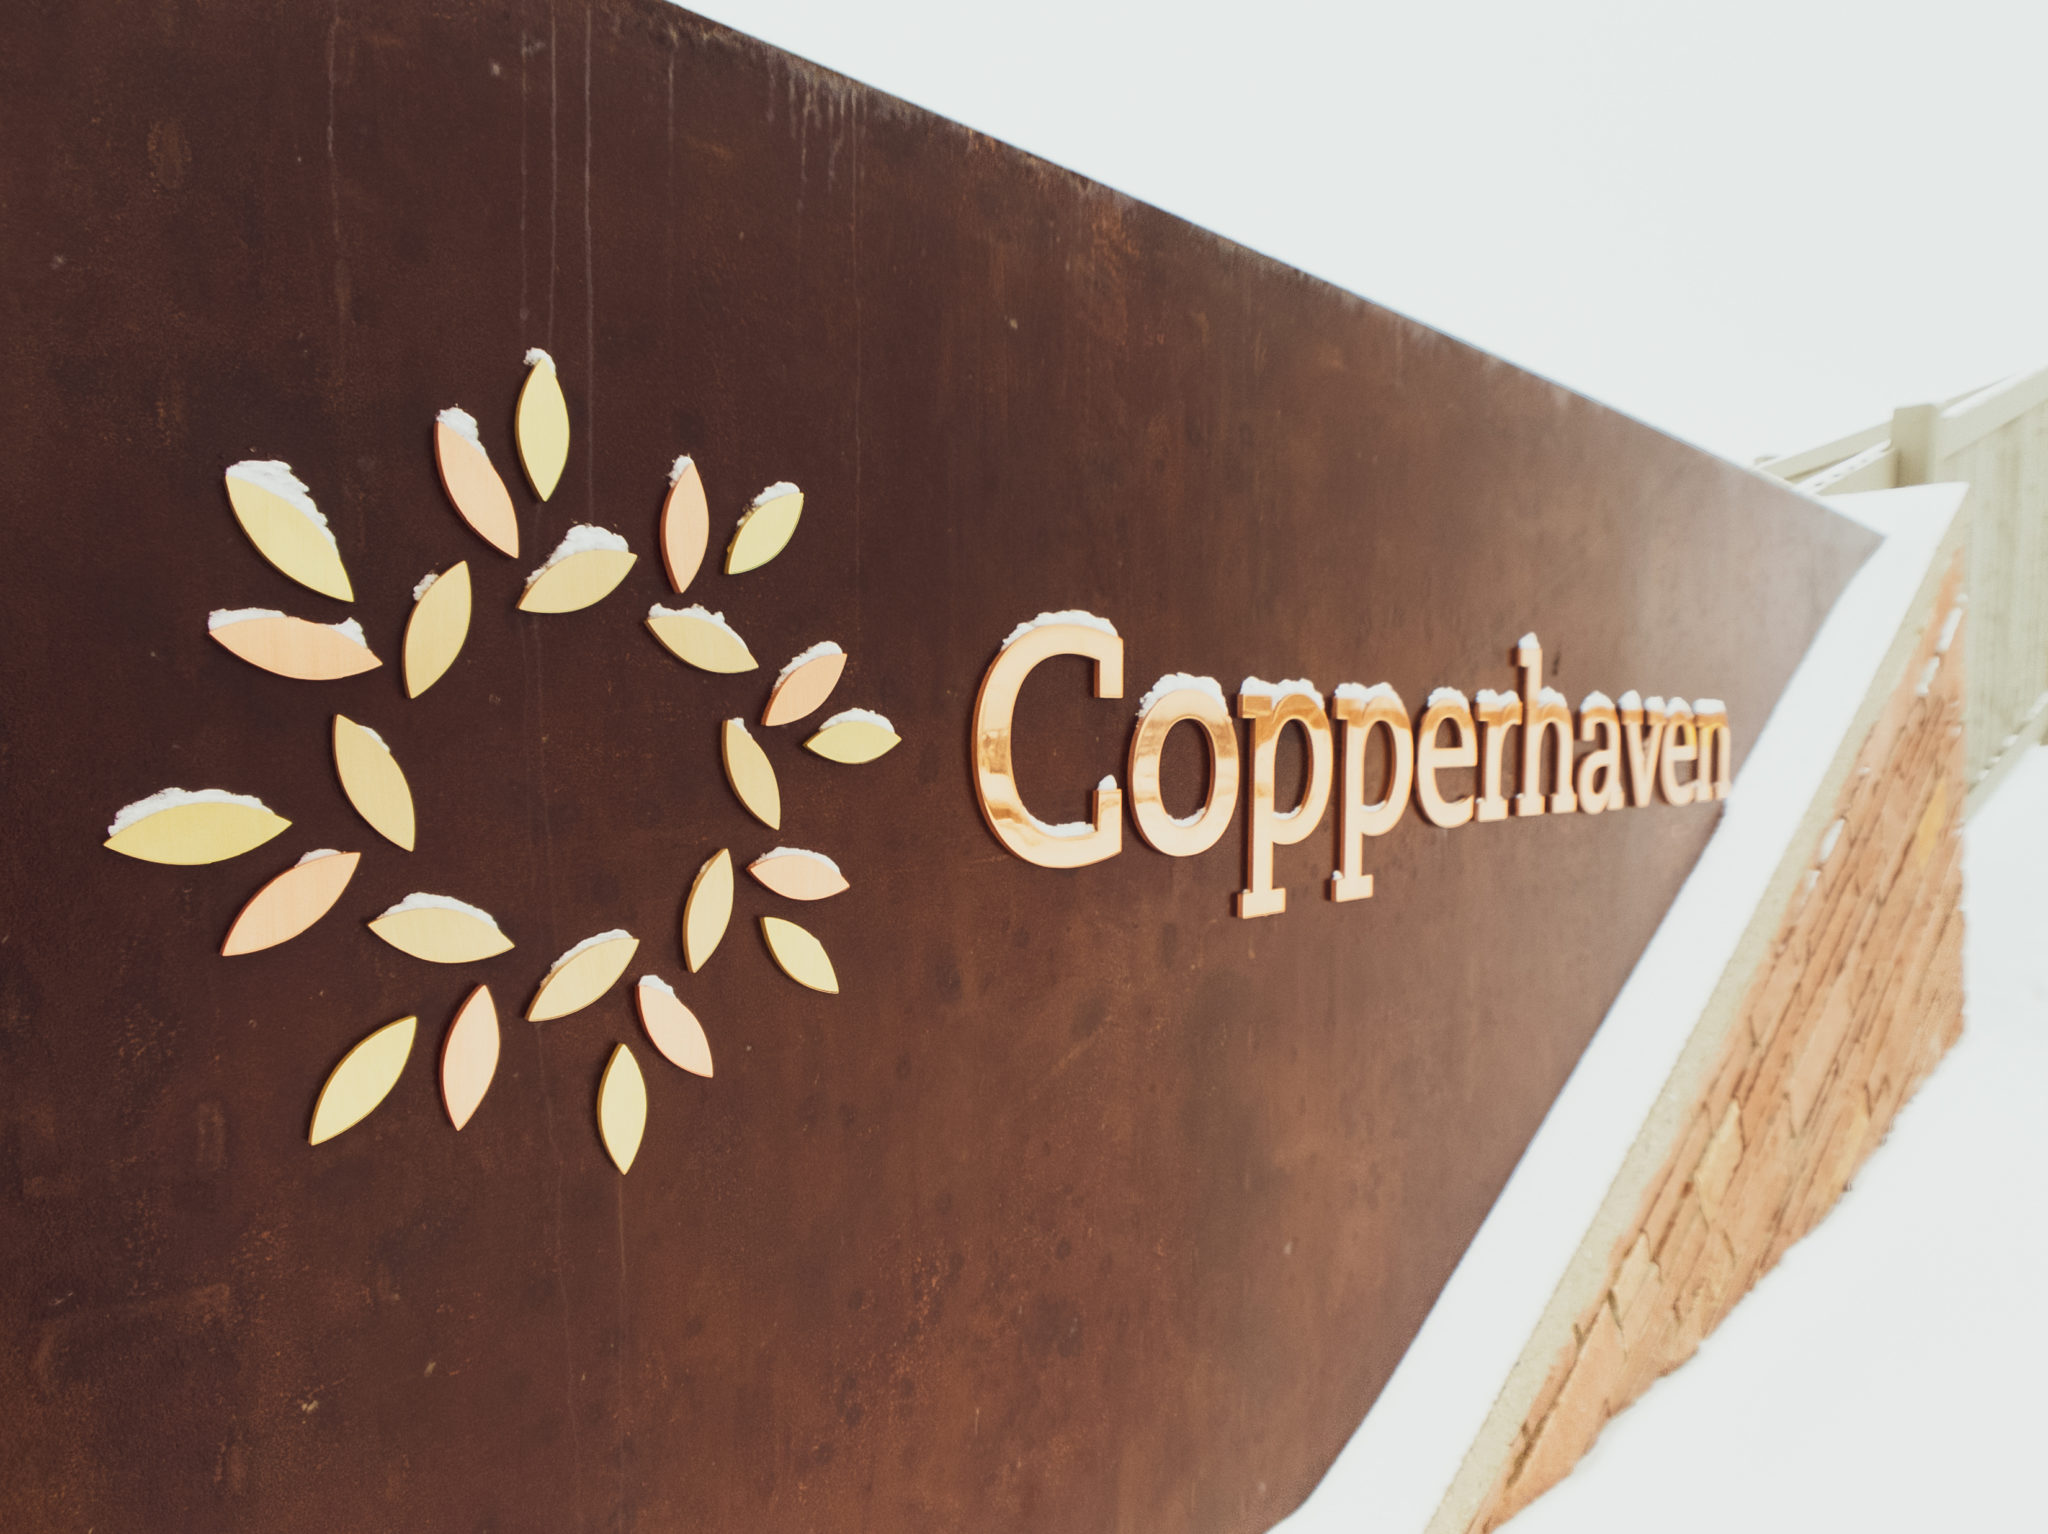 Neighbourhood entrance feature to Copperhaven